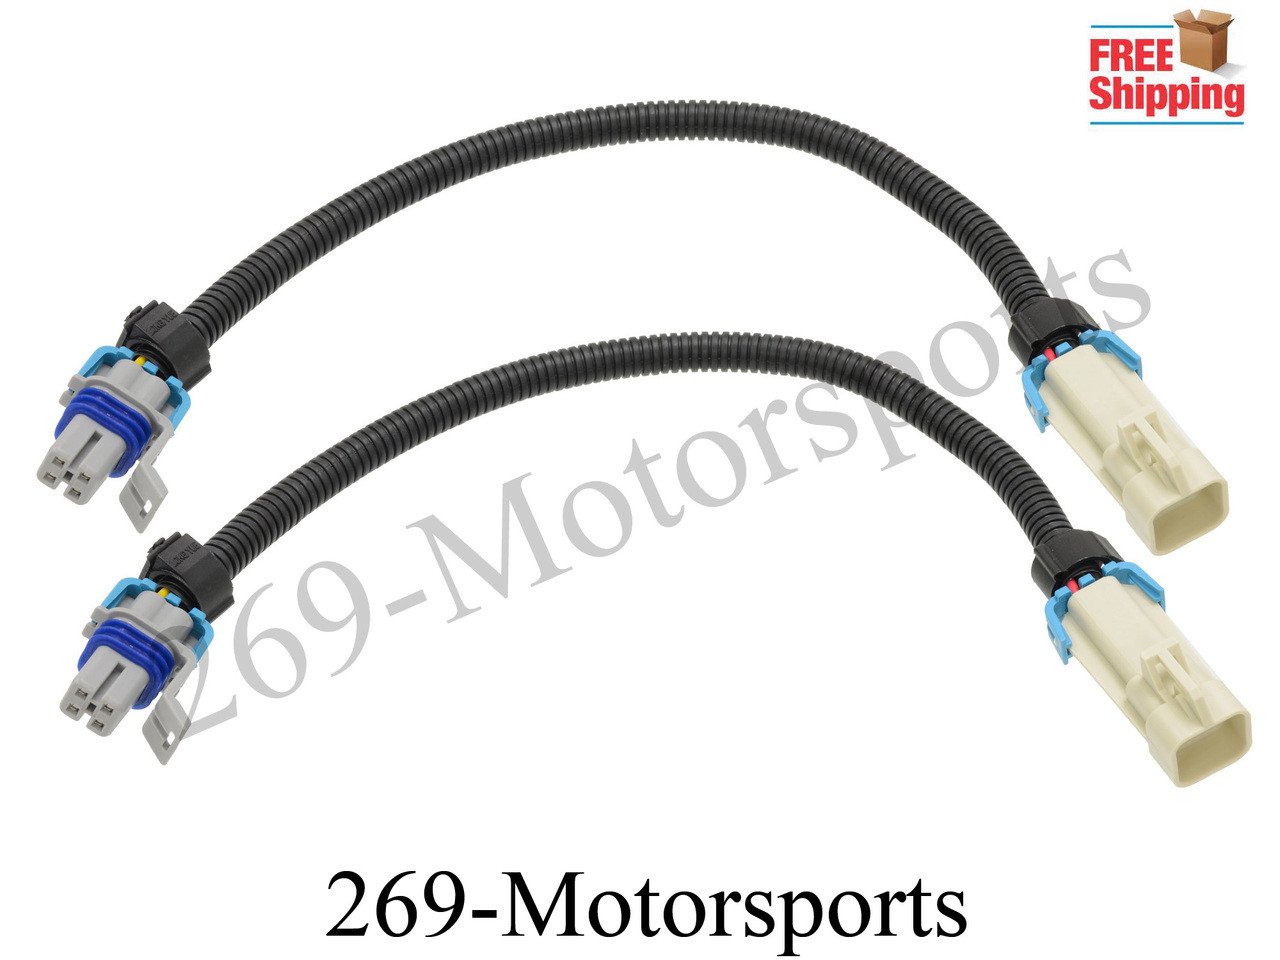 medium resolution of o2 oxygen sensor header extension wire harness fits ls1 ls2 04 06 gto cts v 12